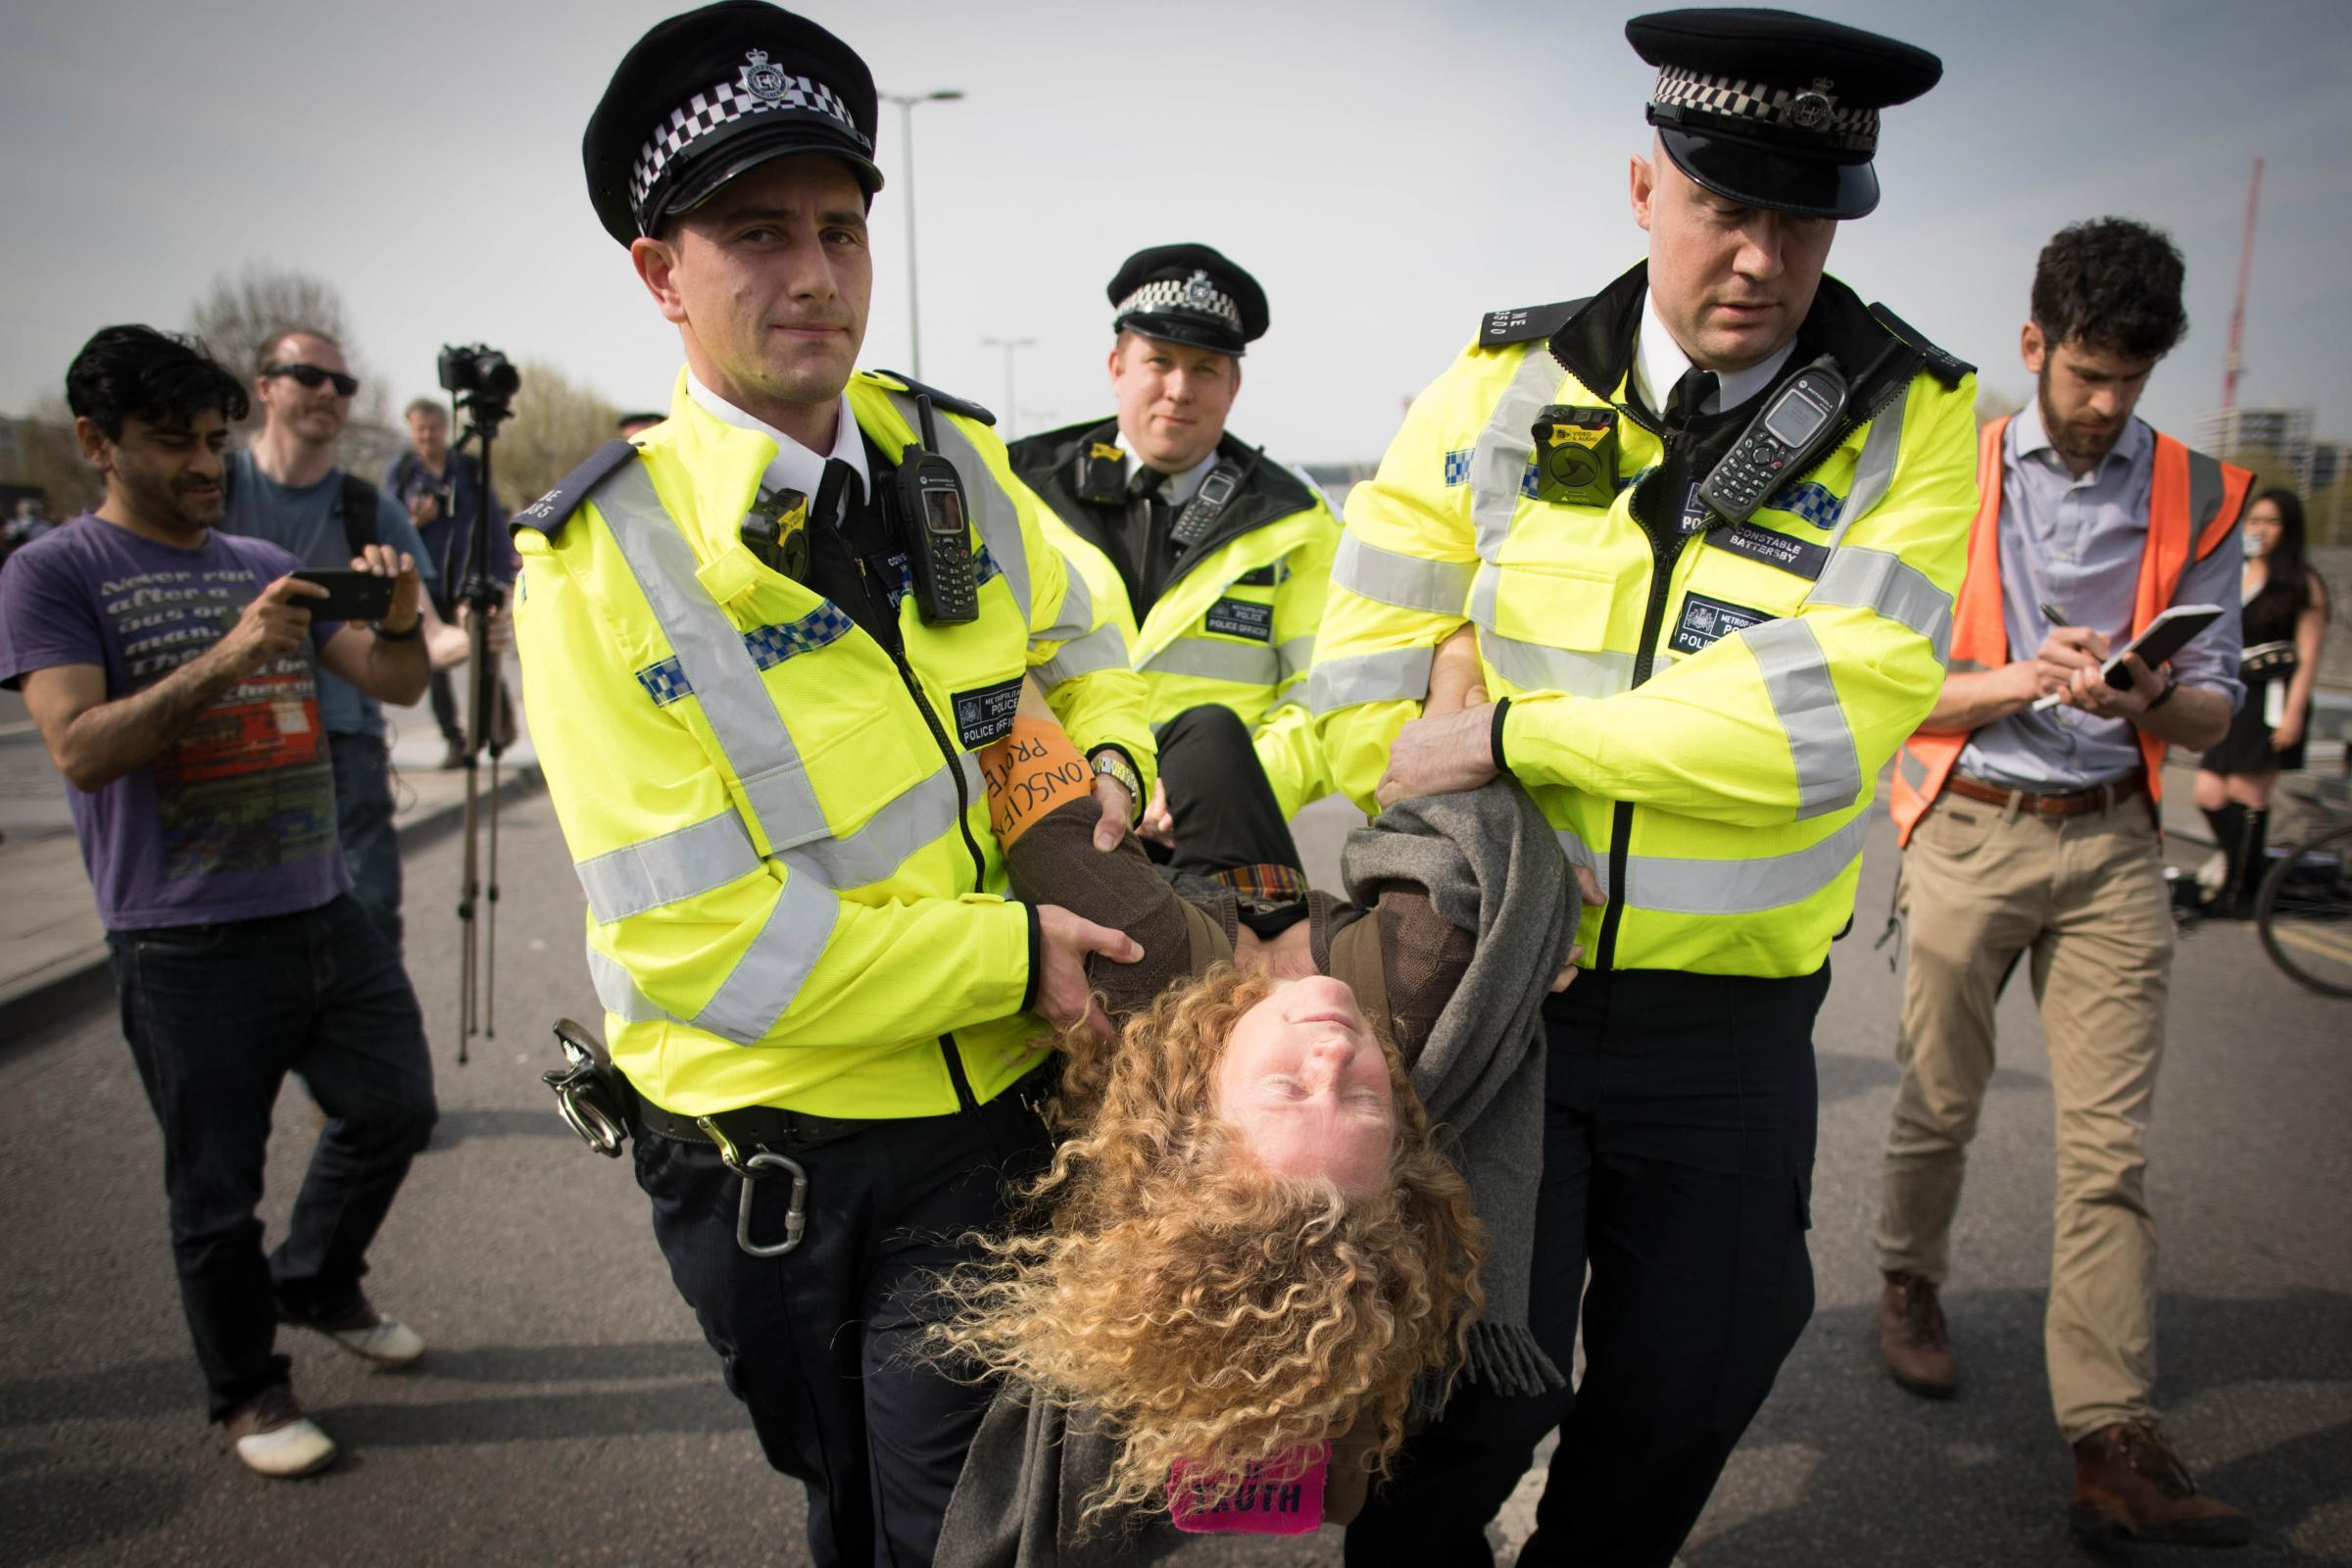 Over 1,000 arrested during climate change protests in London